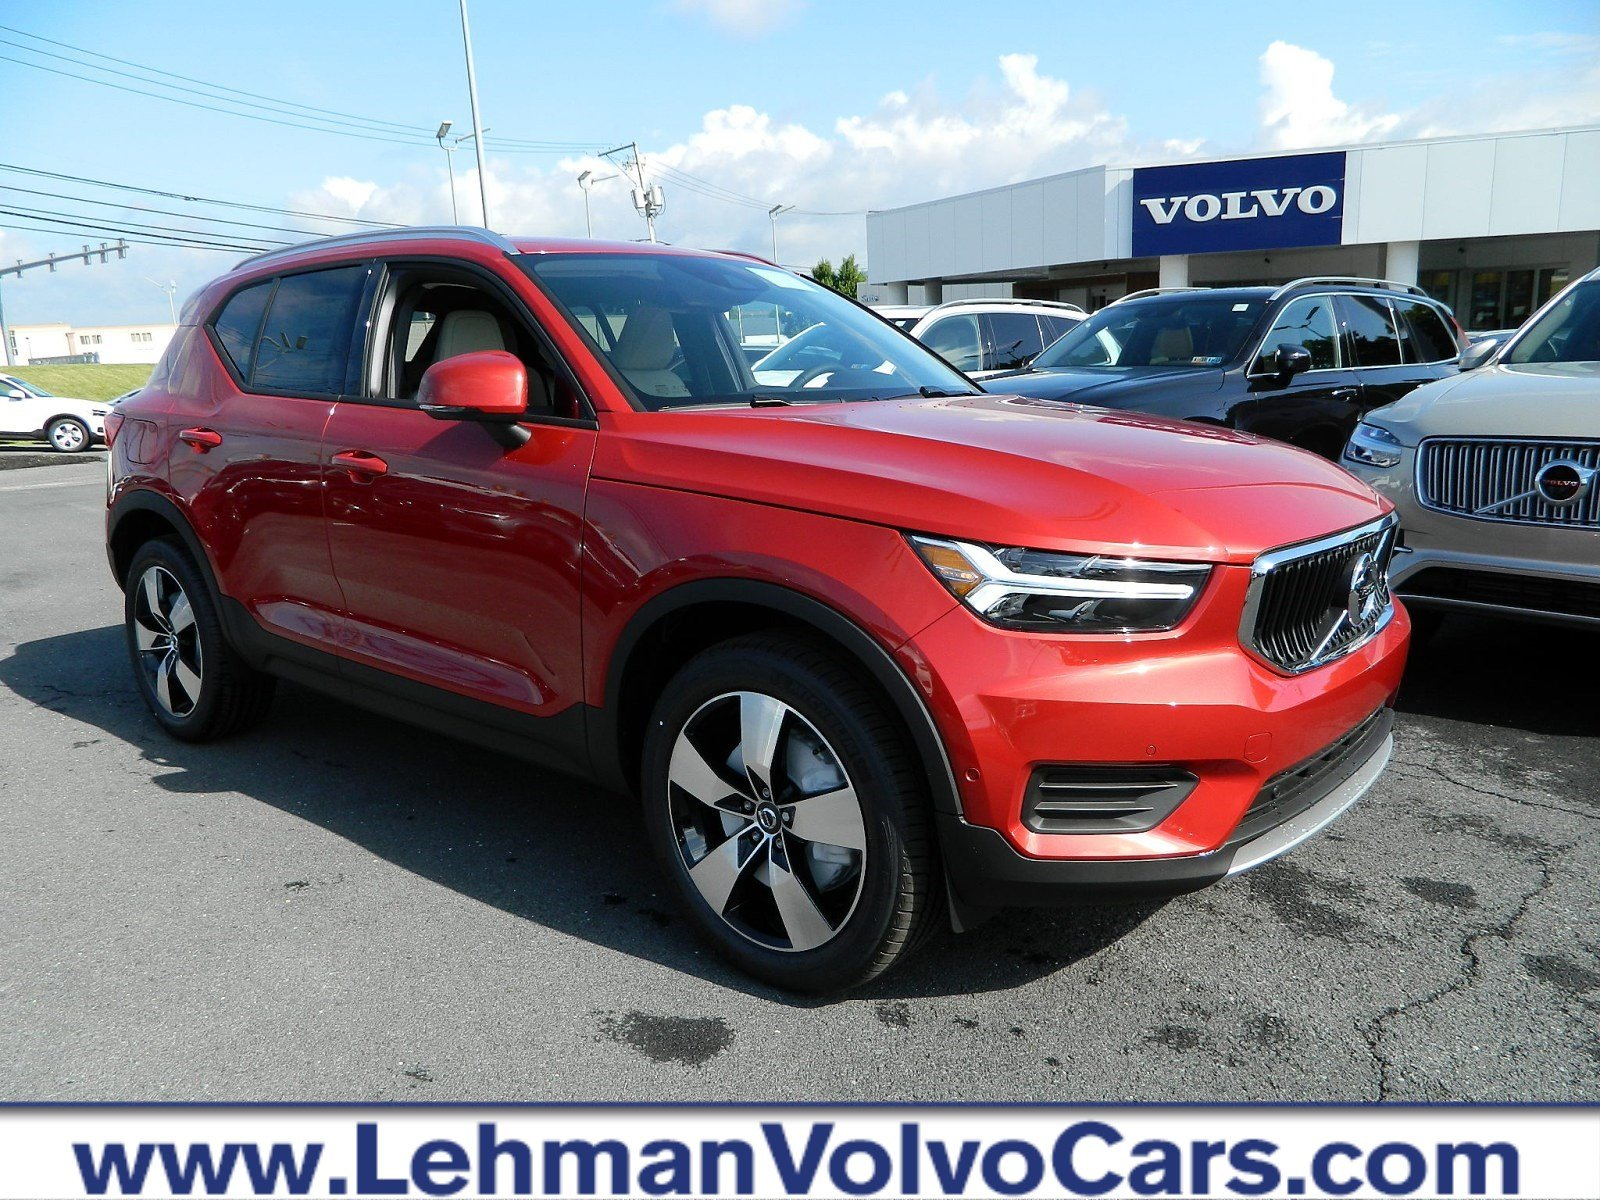 New 2019 Volvo Xc40 For Sale Lease In Mechanicsburg Stock 19023